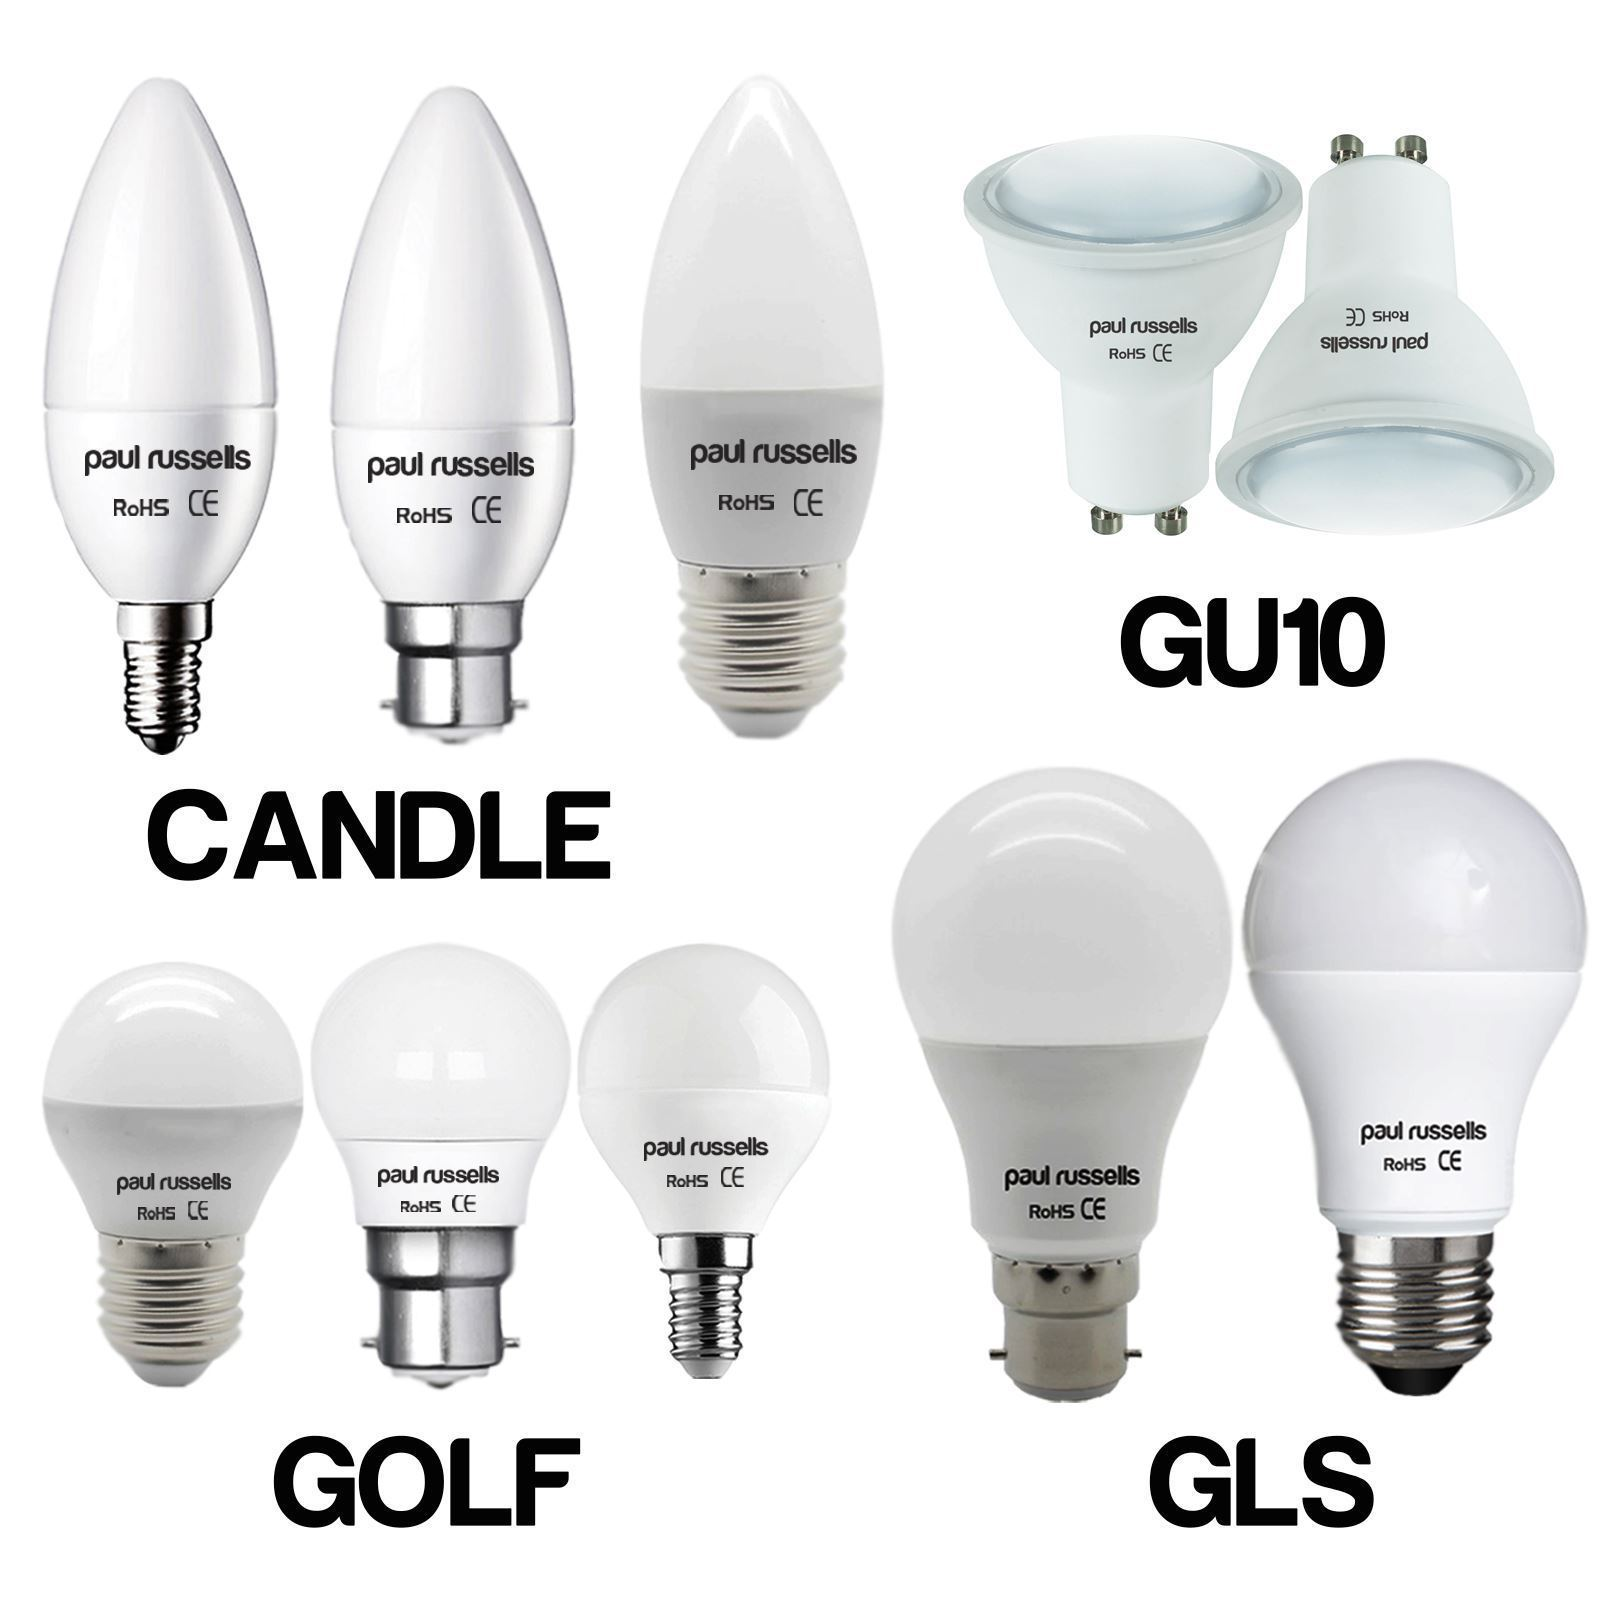 led gu10 e14 e27 b22 25w 40w 60w 100w equiv candle golf gls spot light bulbs. Black Bedroom Furniture Sets. Home Design Ideas